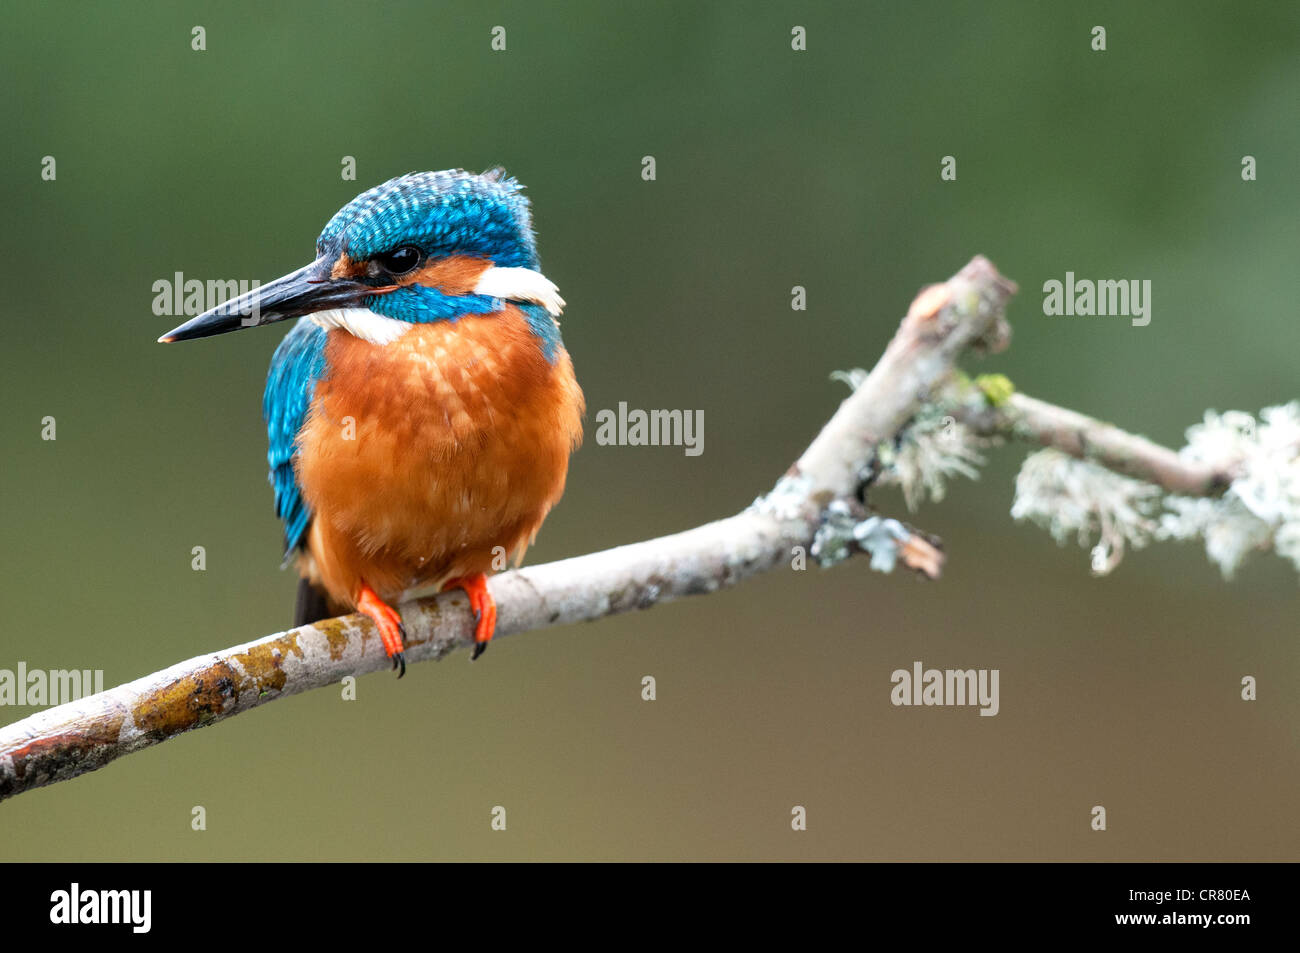 male kingfisher sitting on a twig looking left - Stock Image